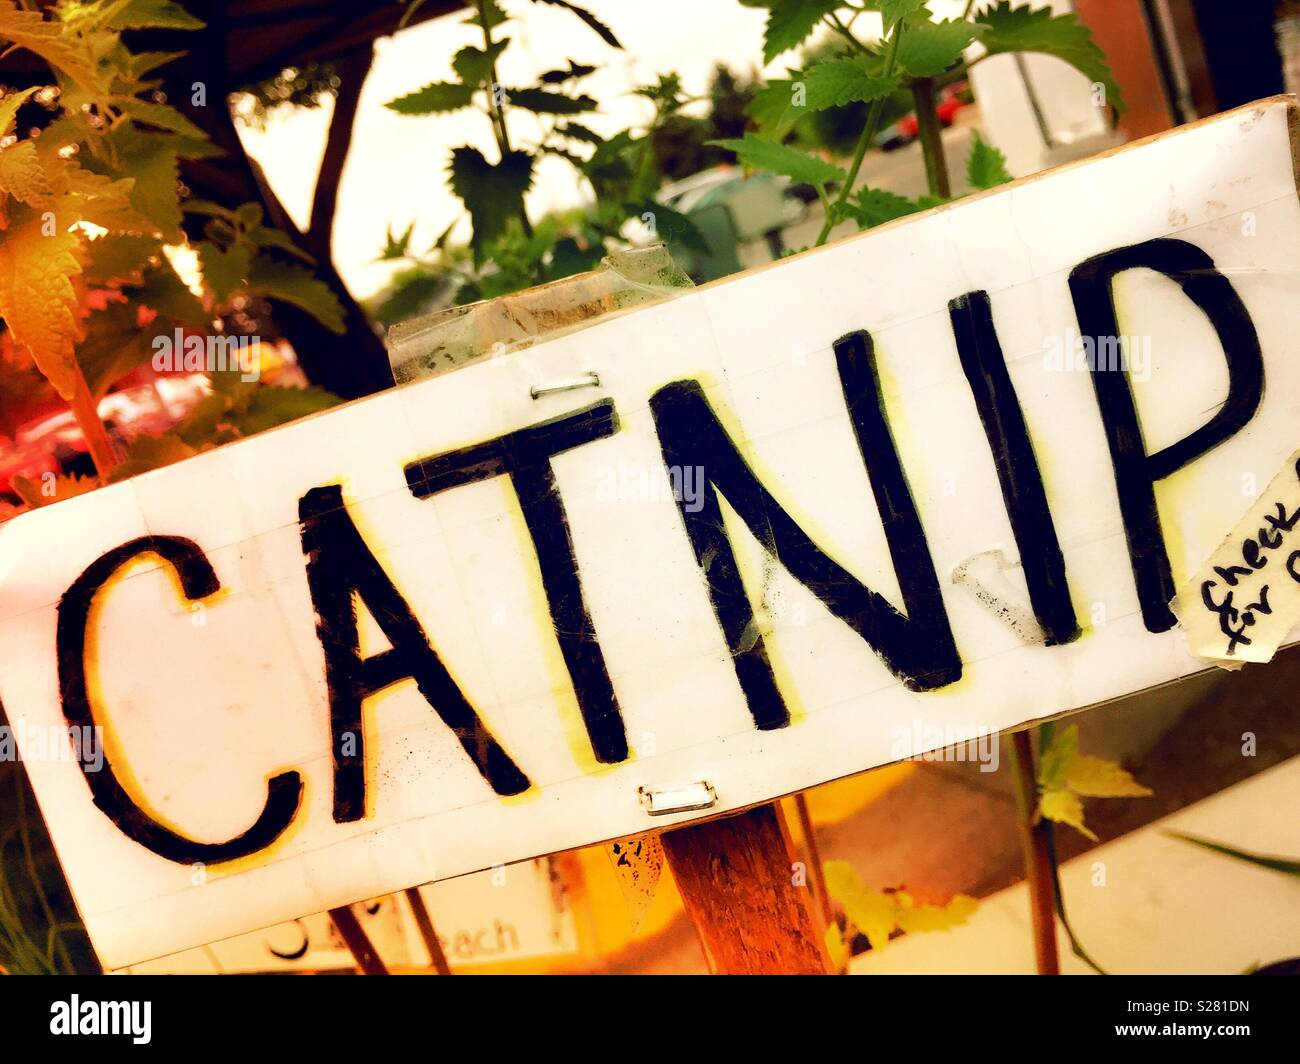 Sign at farmers market selling catnip, USAA - Stock Image